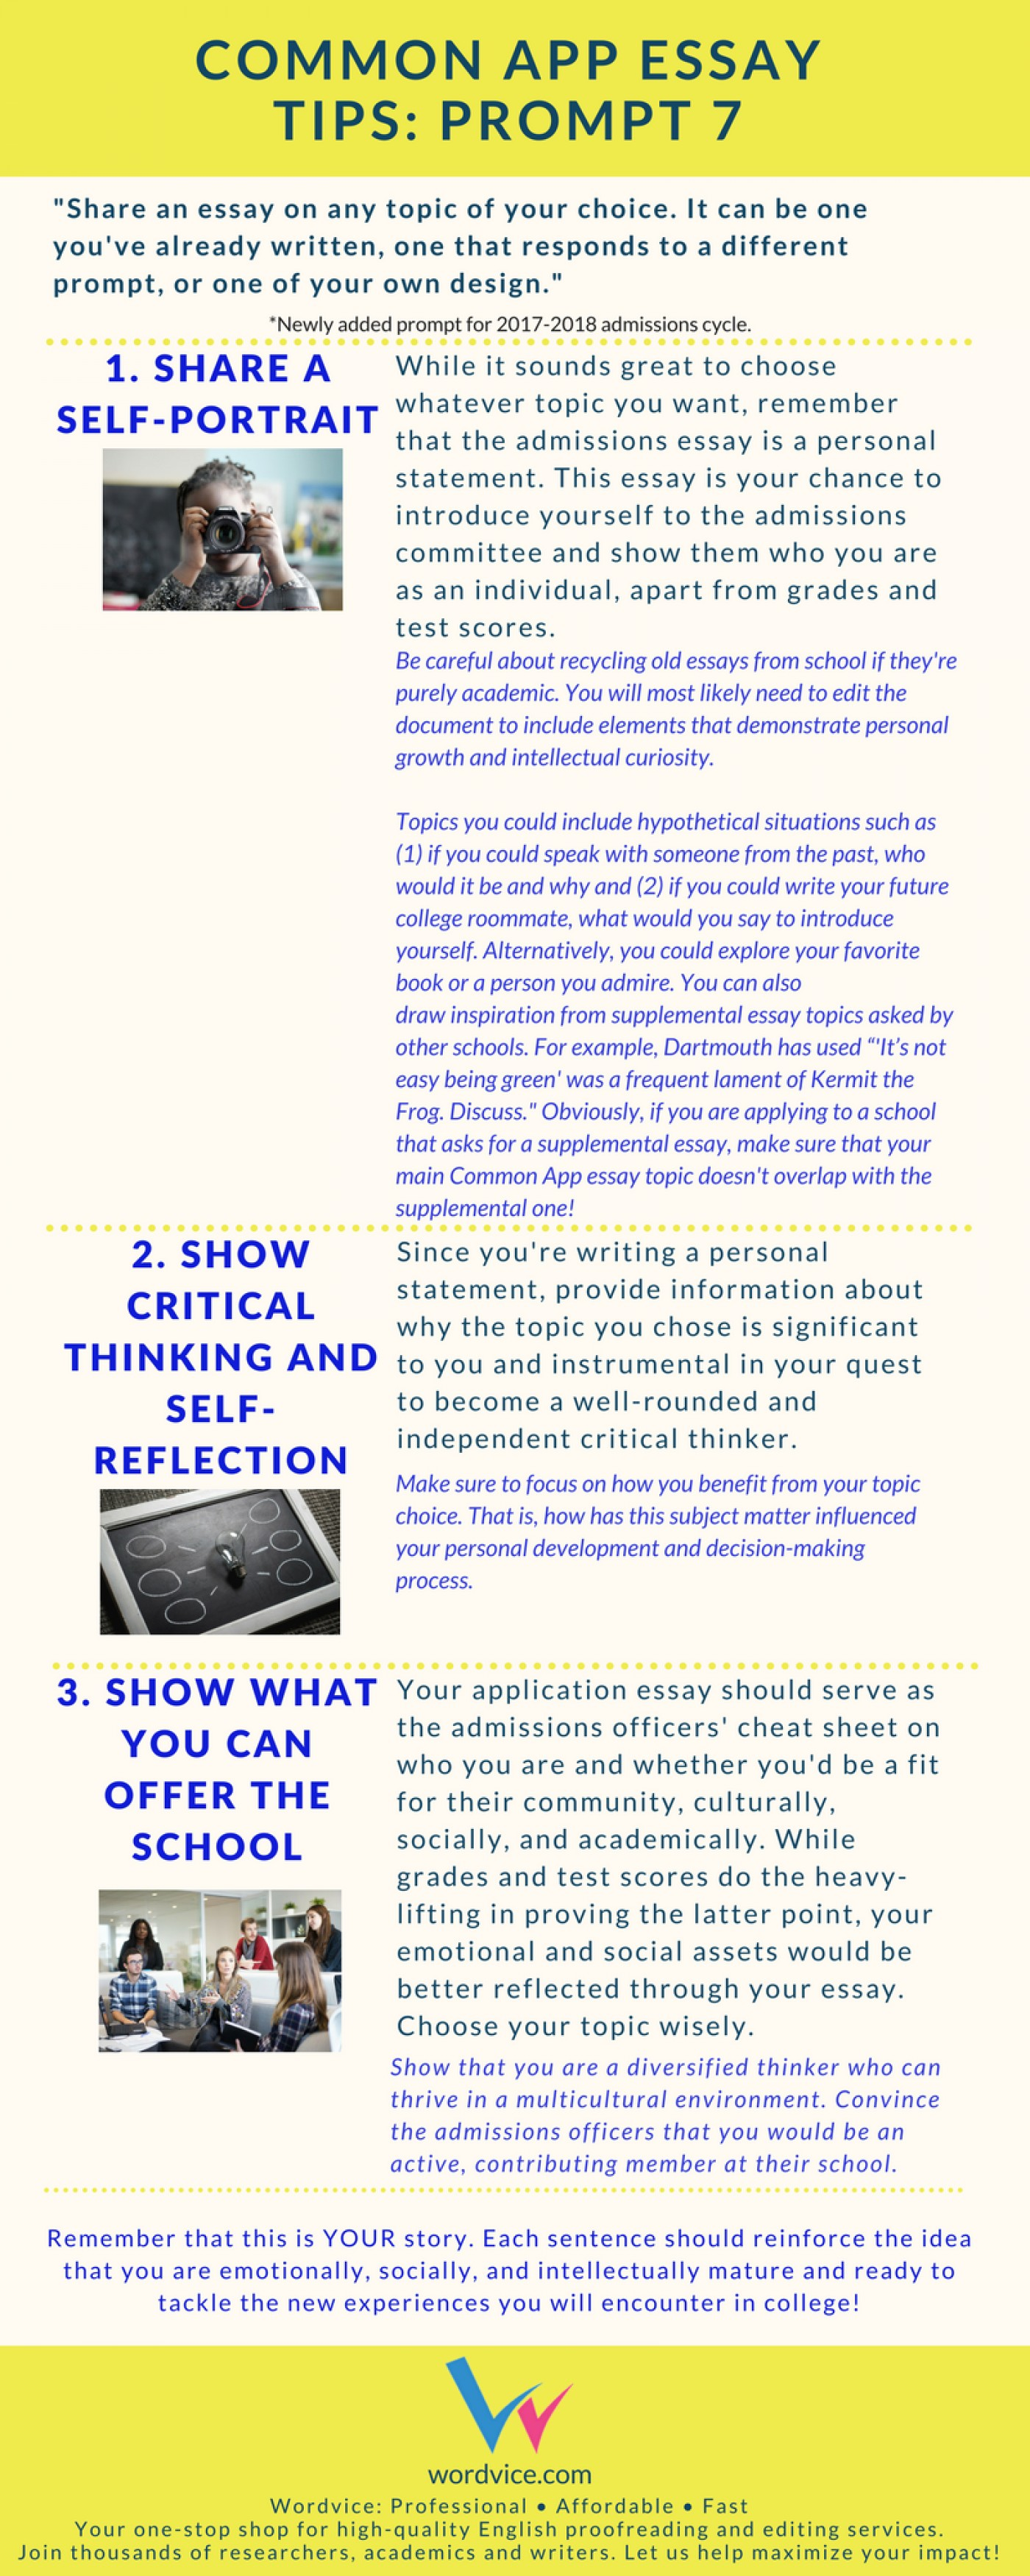 010 Common Application Essay Prompts Example App Brainstormprompt Best 2017 Examples 2017-18 A Guide 1400